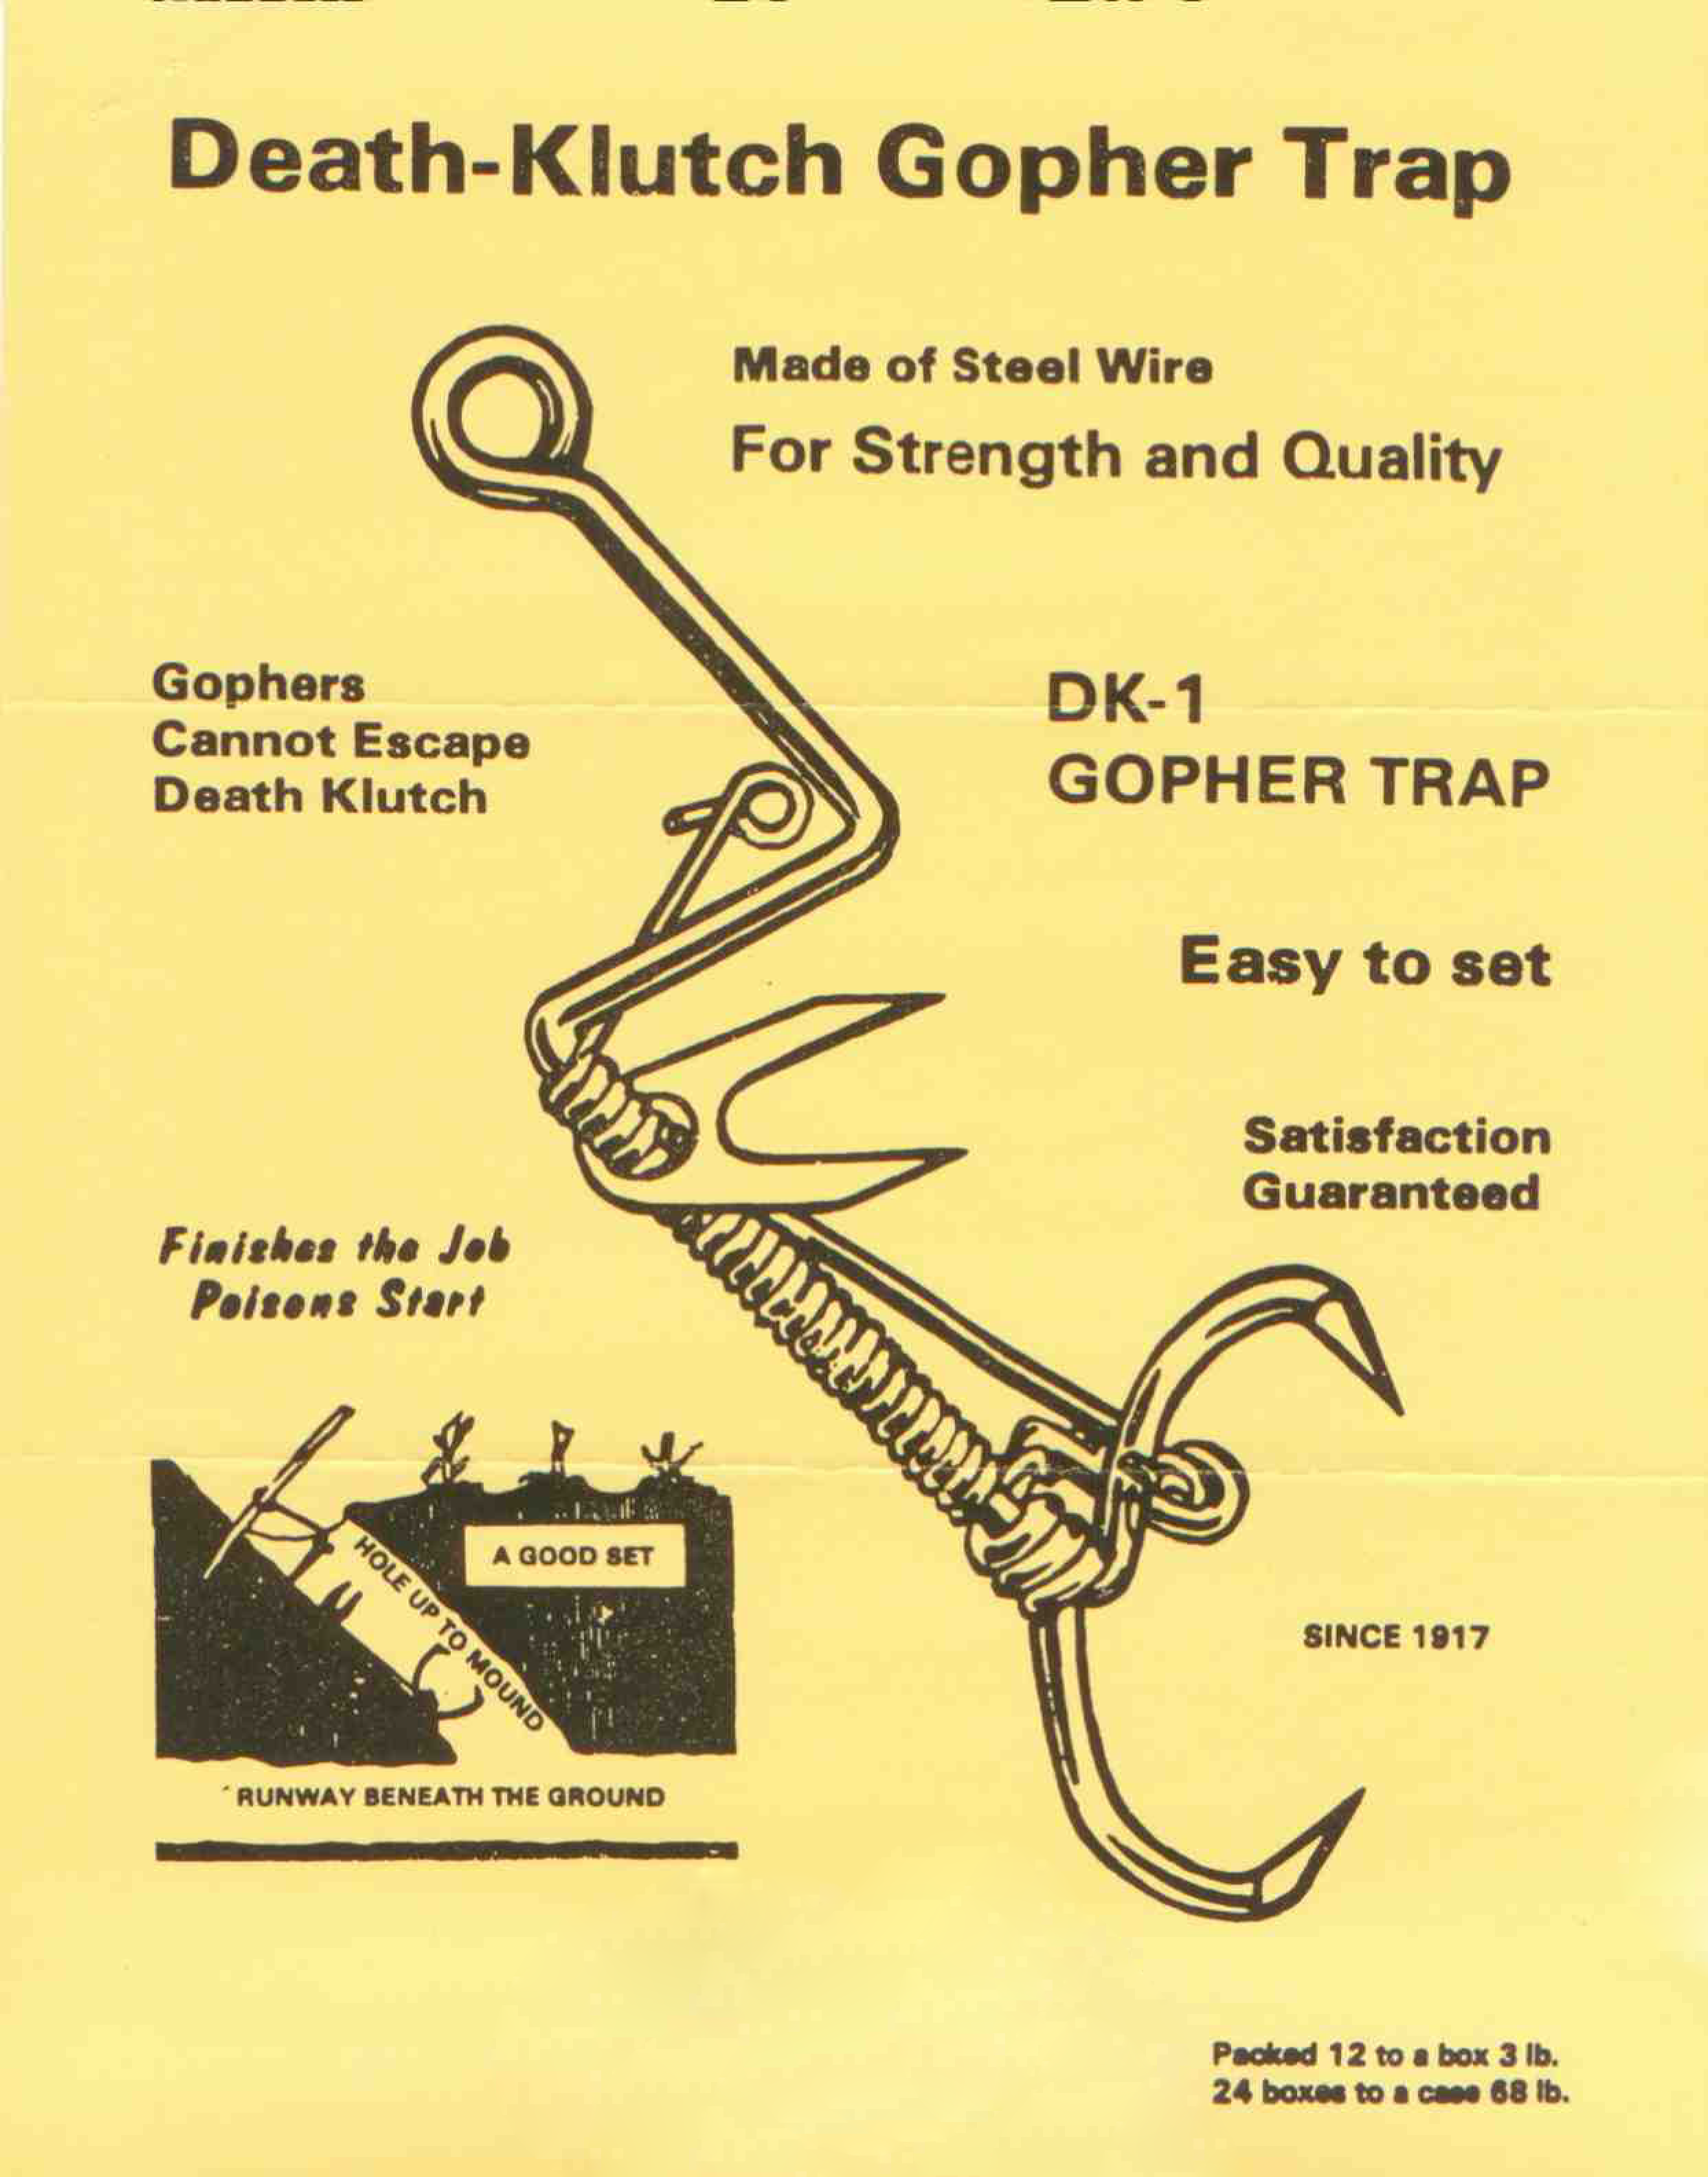 death clutch gopher trap - The Snare Shop